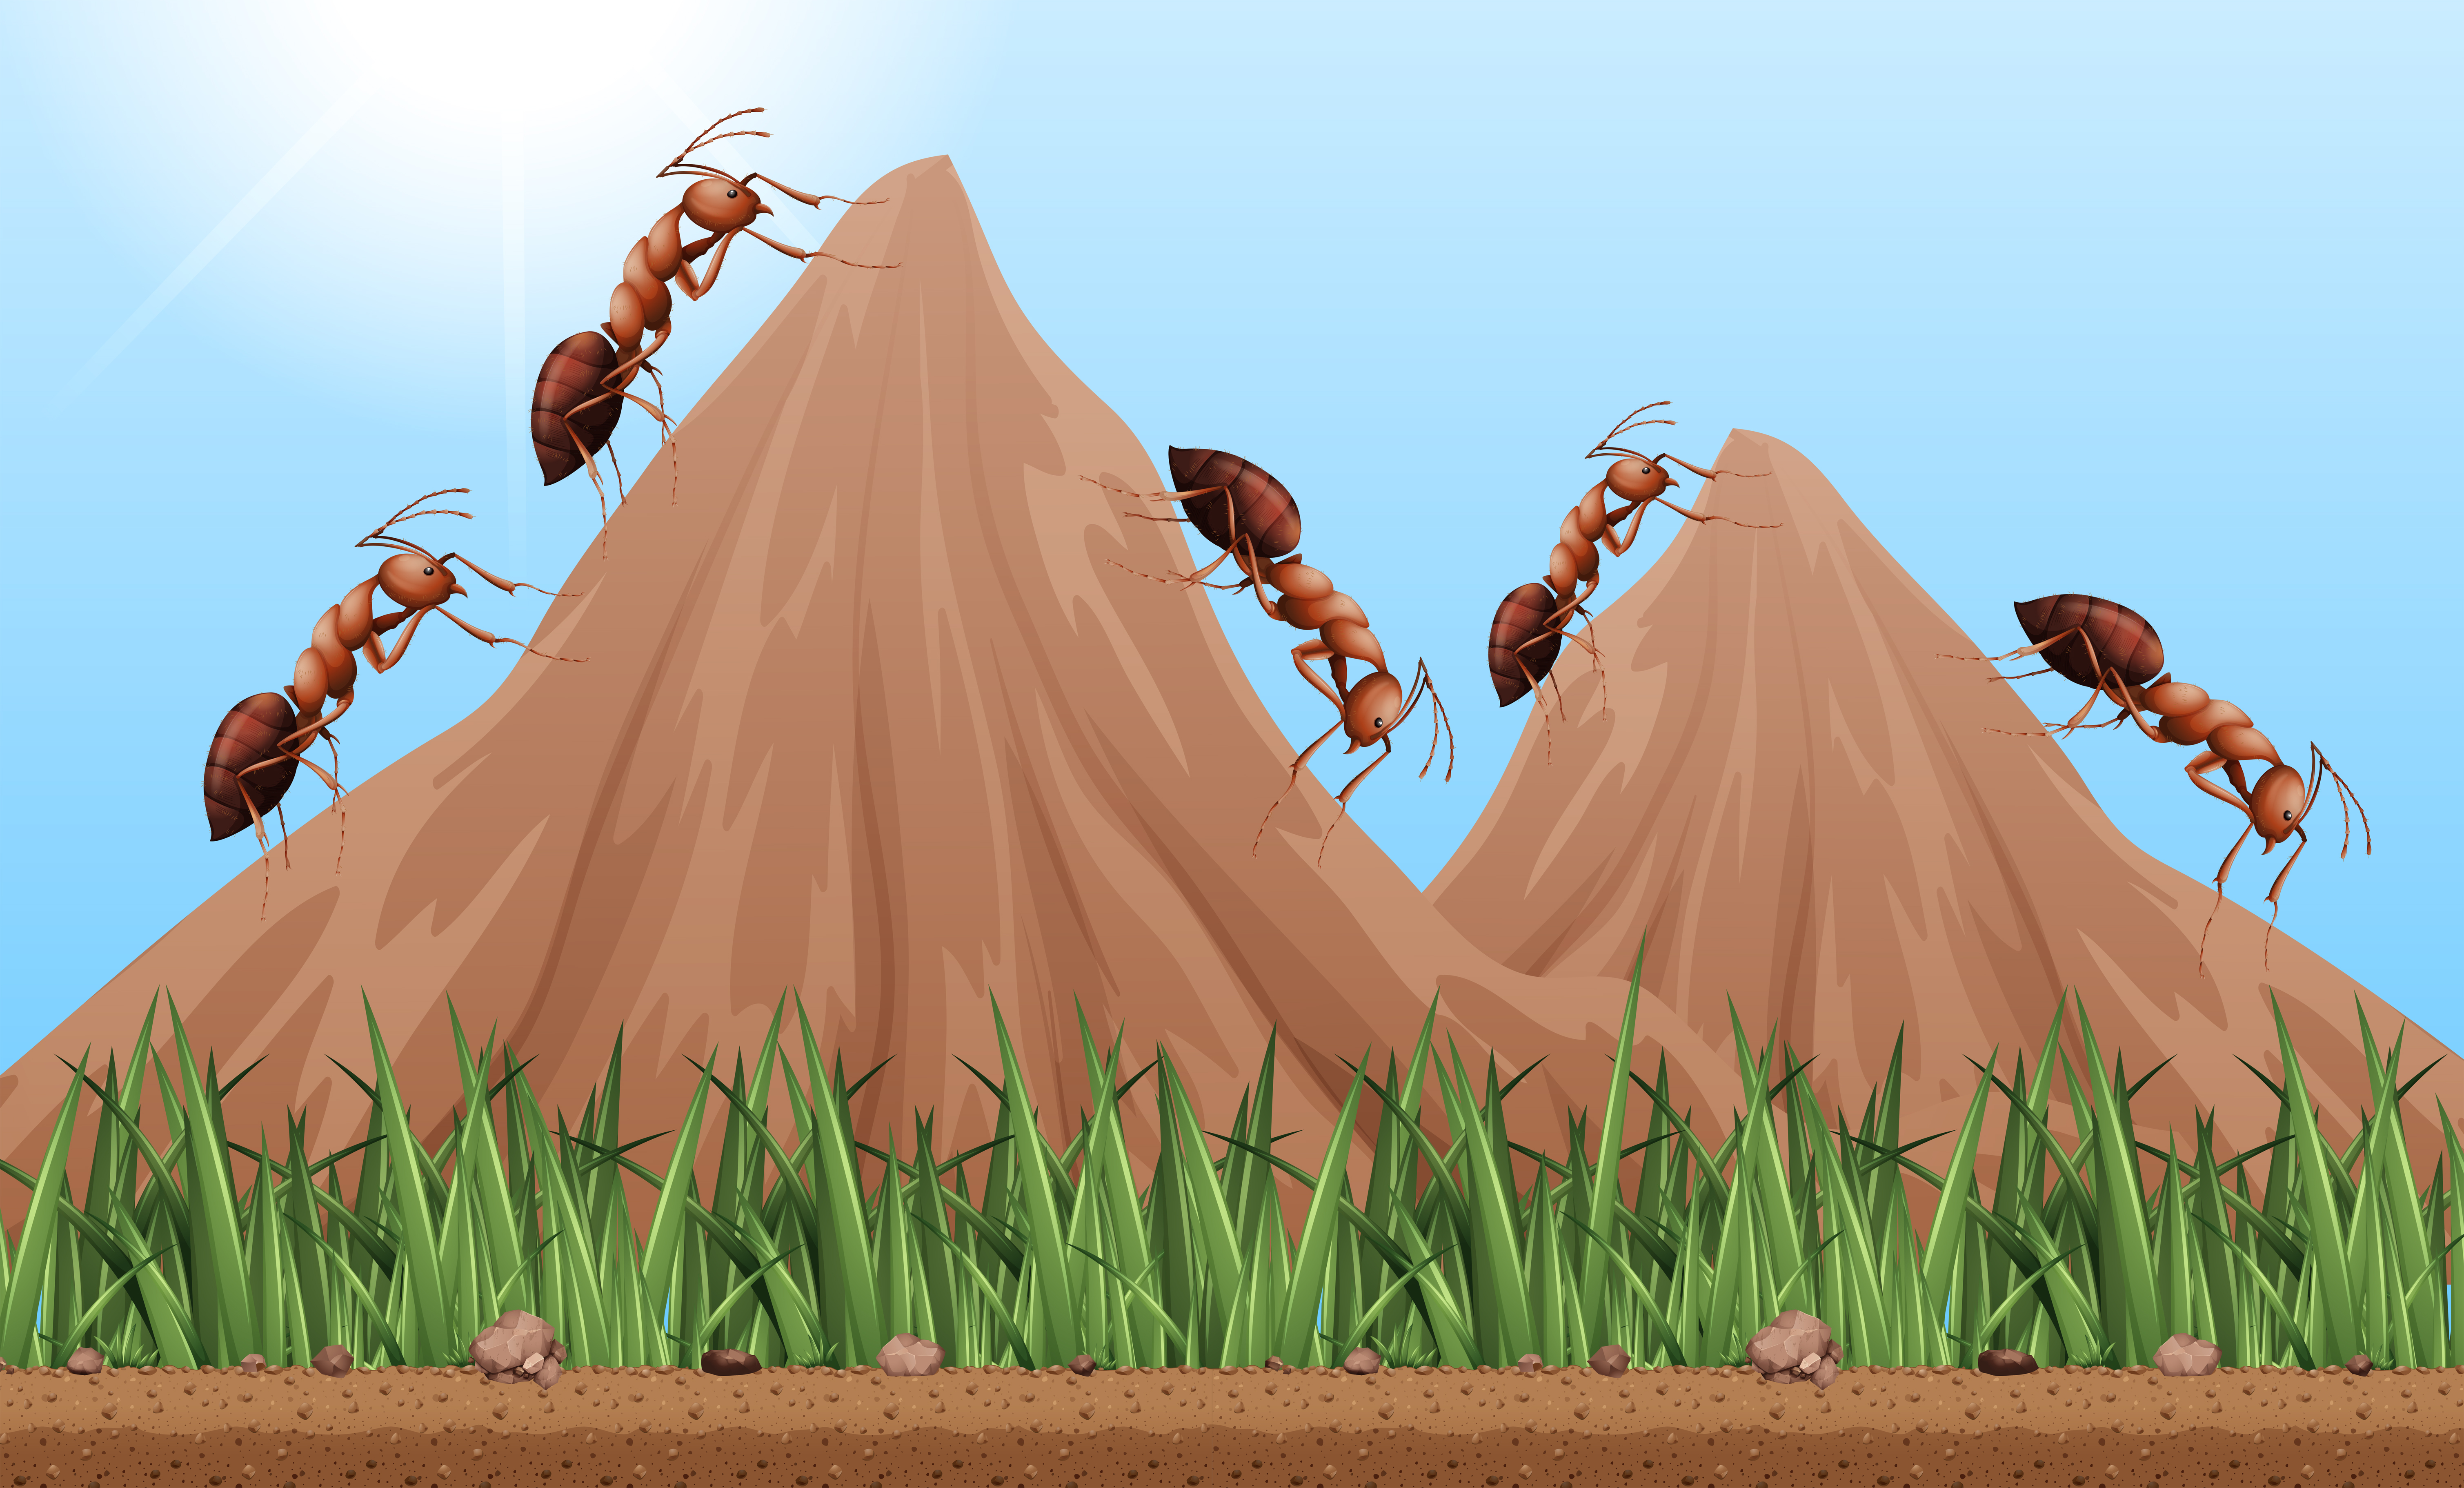 Many Ants Climbing Up The Mountains Download Free Vector